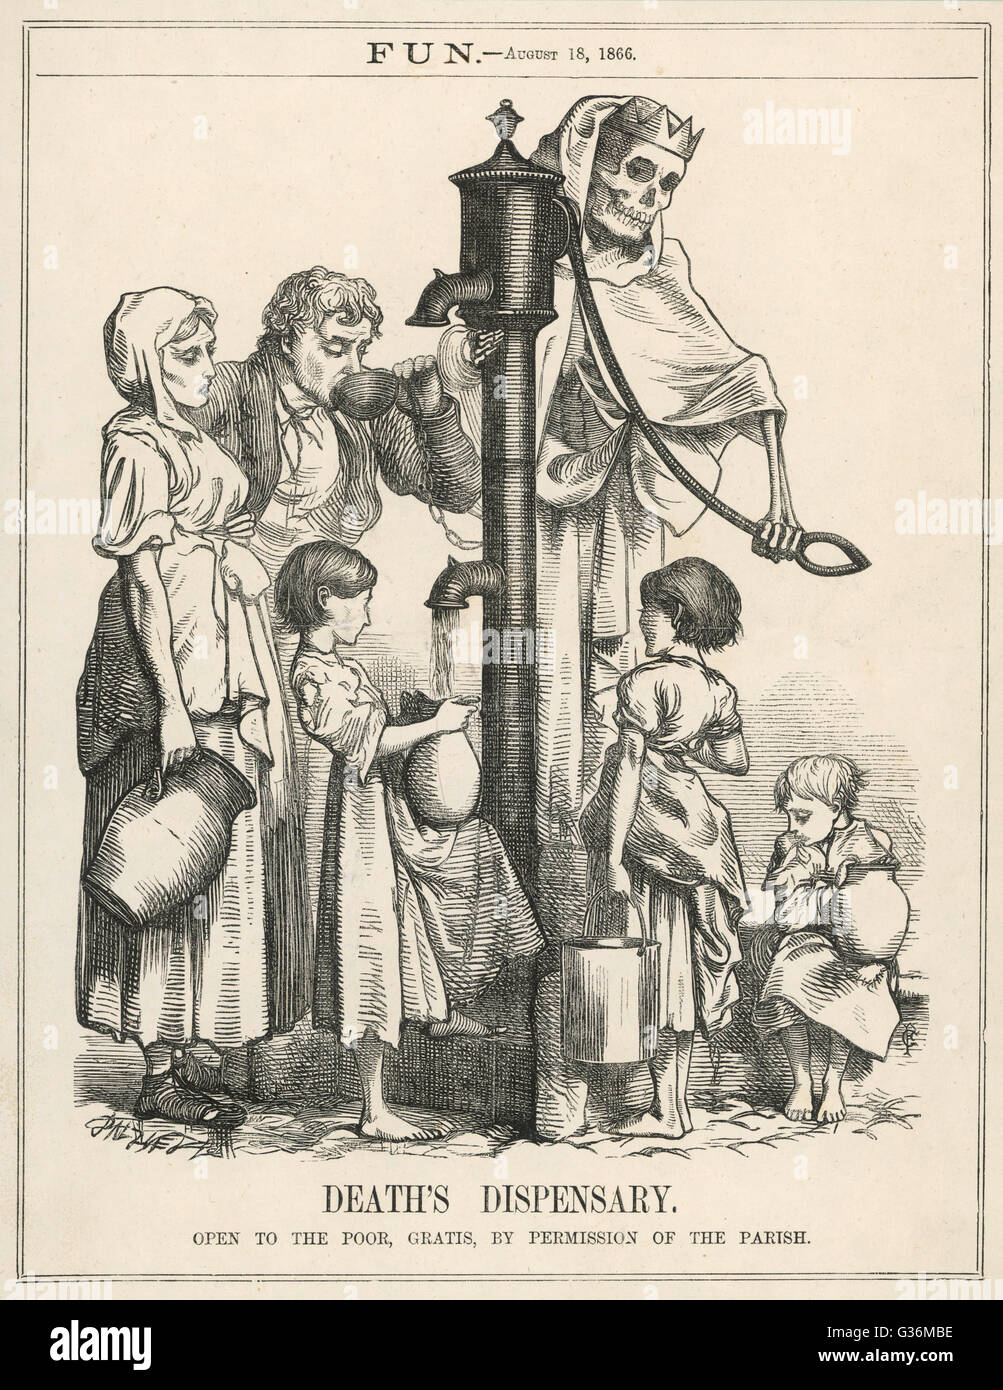 Fun makes a comment on diseased water supply.         Date: 18 August 1866 - Stock Image